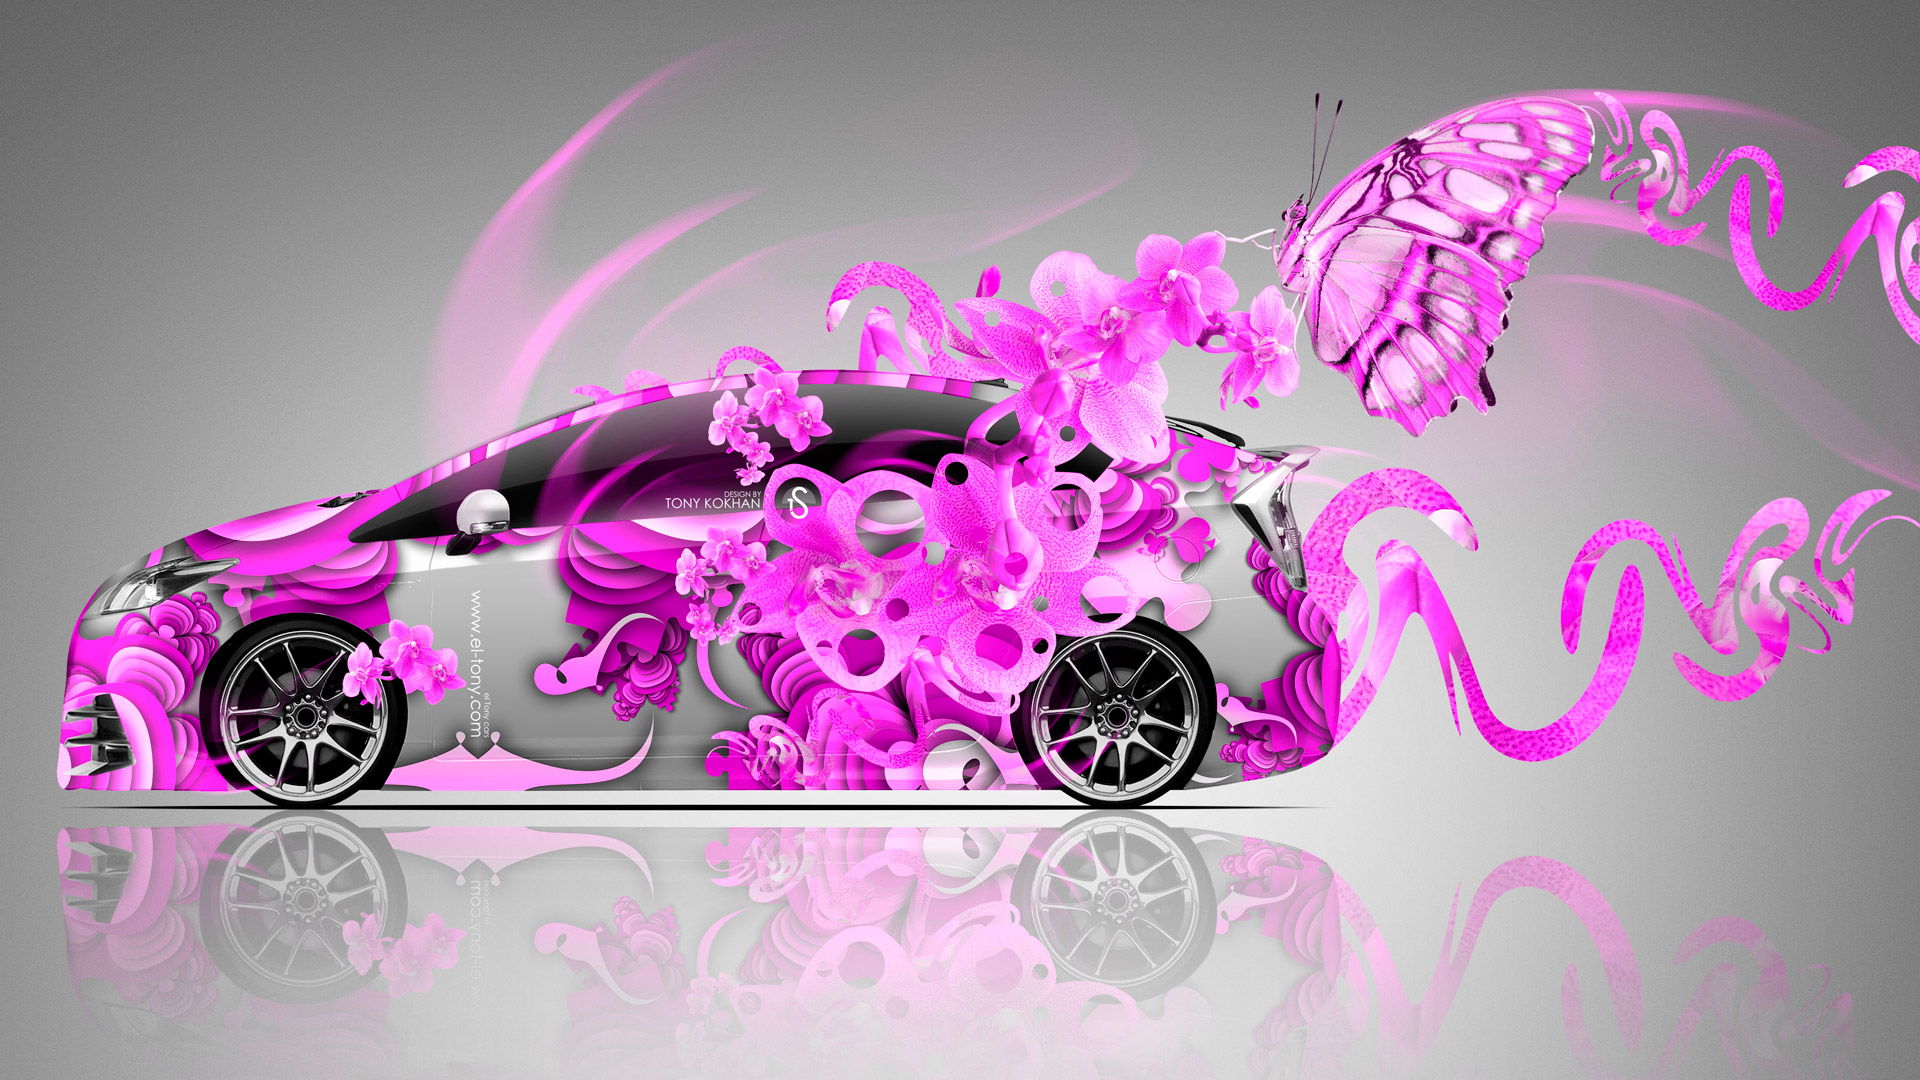 4k Wallpaper Car Lamborghini Toyota Prius Fantasy Flowers Butterfly Car 2014 El Tony